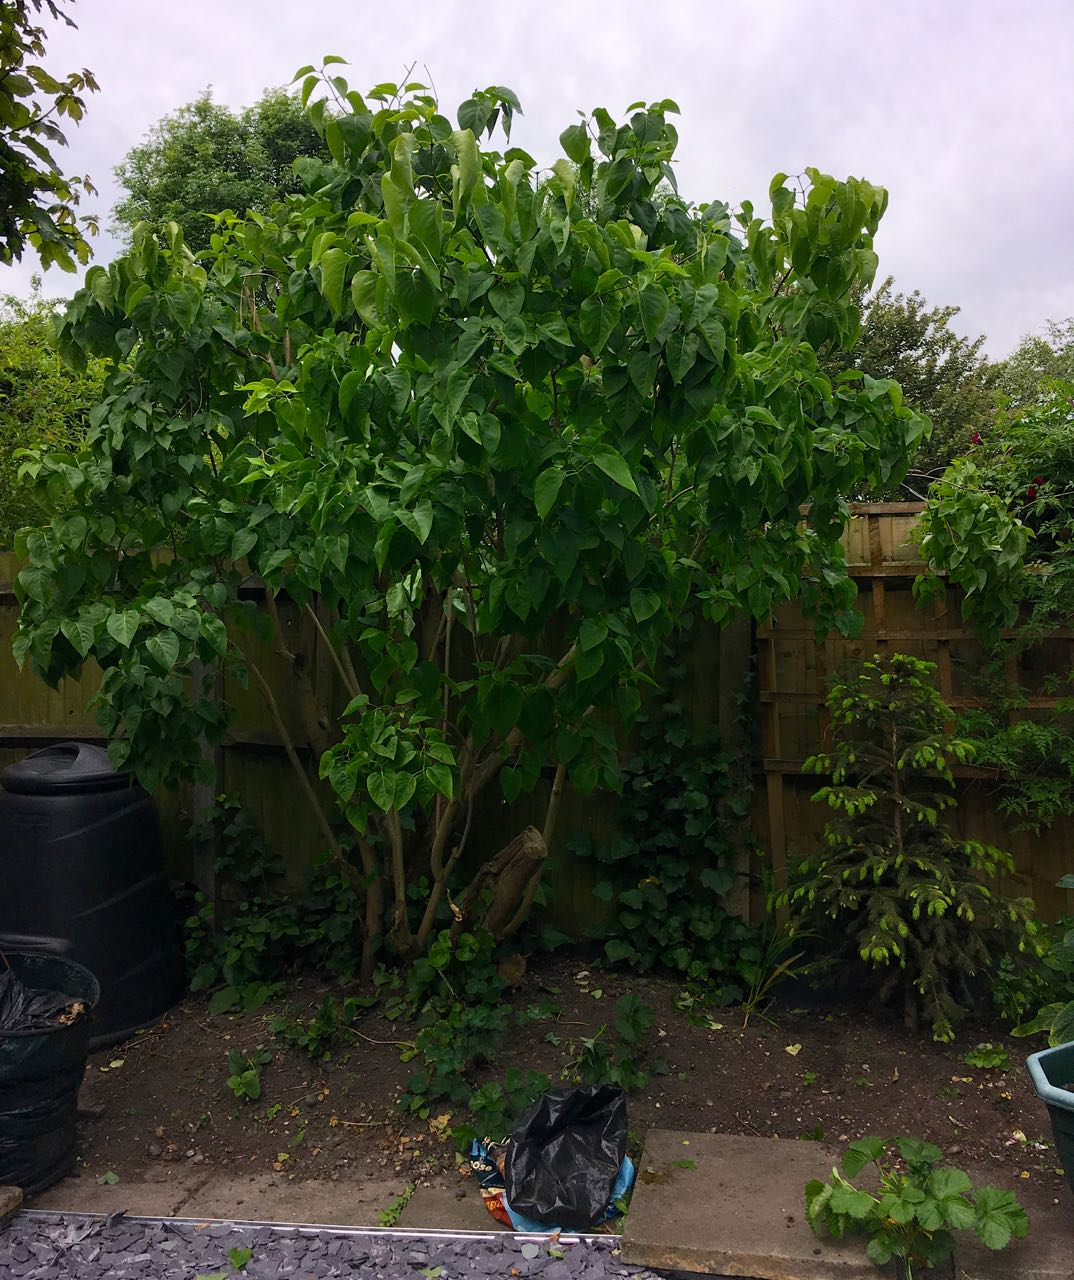 The out of reach lilac branches were also trimmed